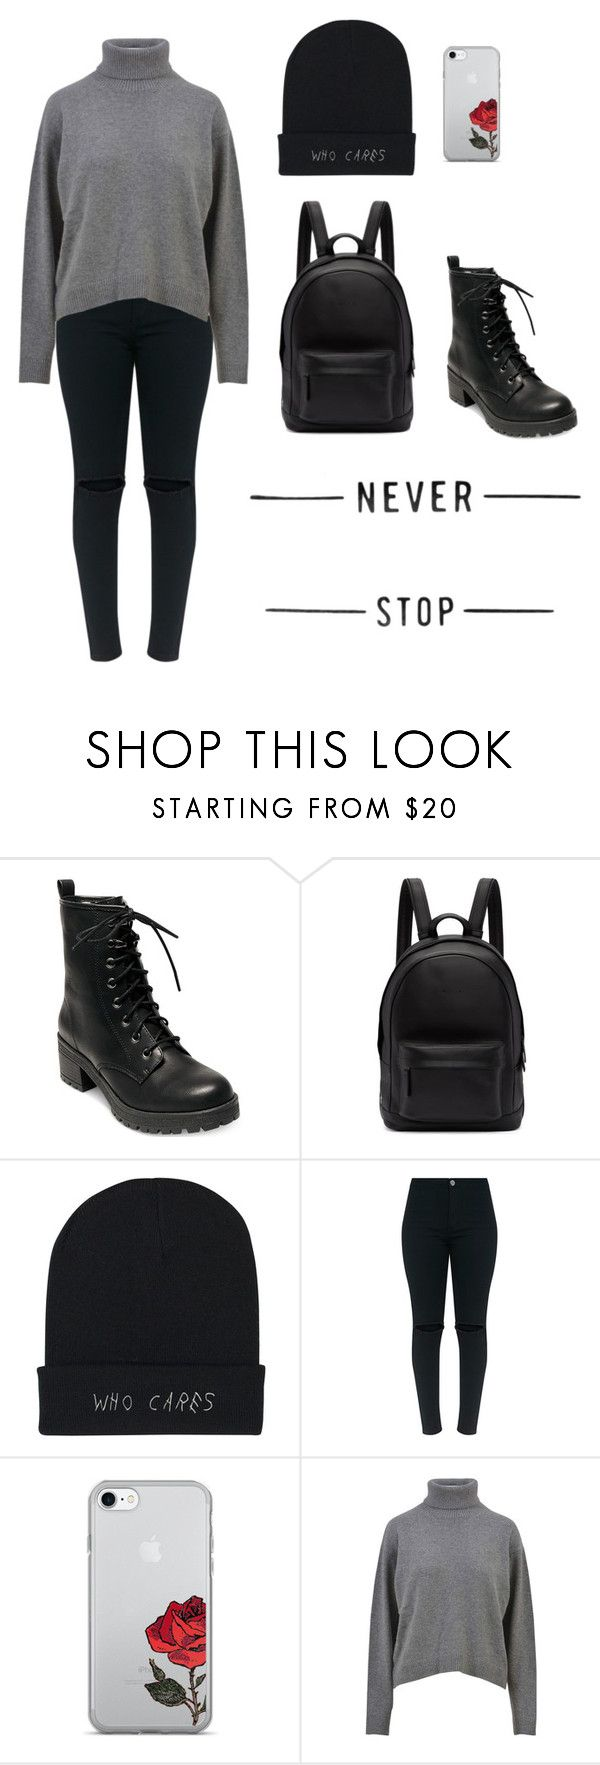 """Untitled #12"" by ithaafifah on Polyvore featuring Madden Girl, PB 0110 and Dolce&Gabbana"